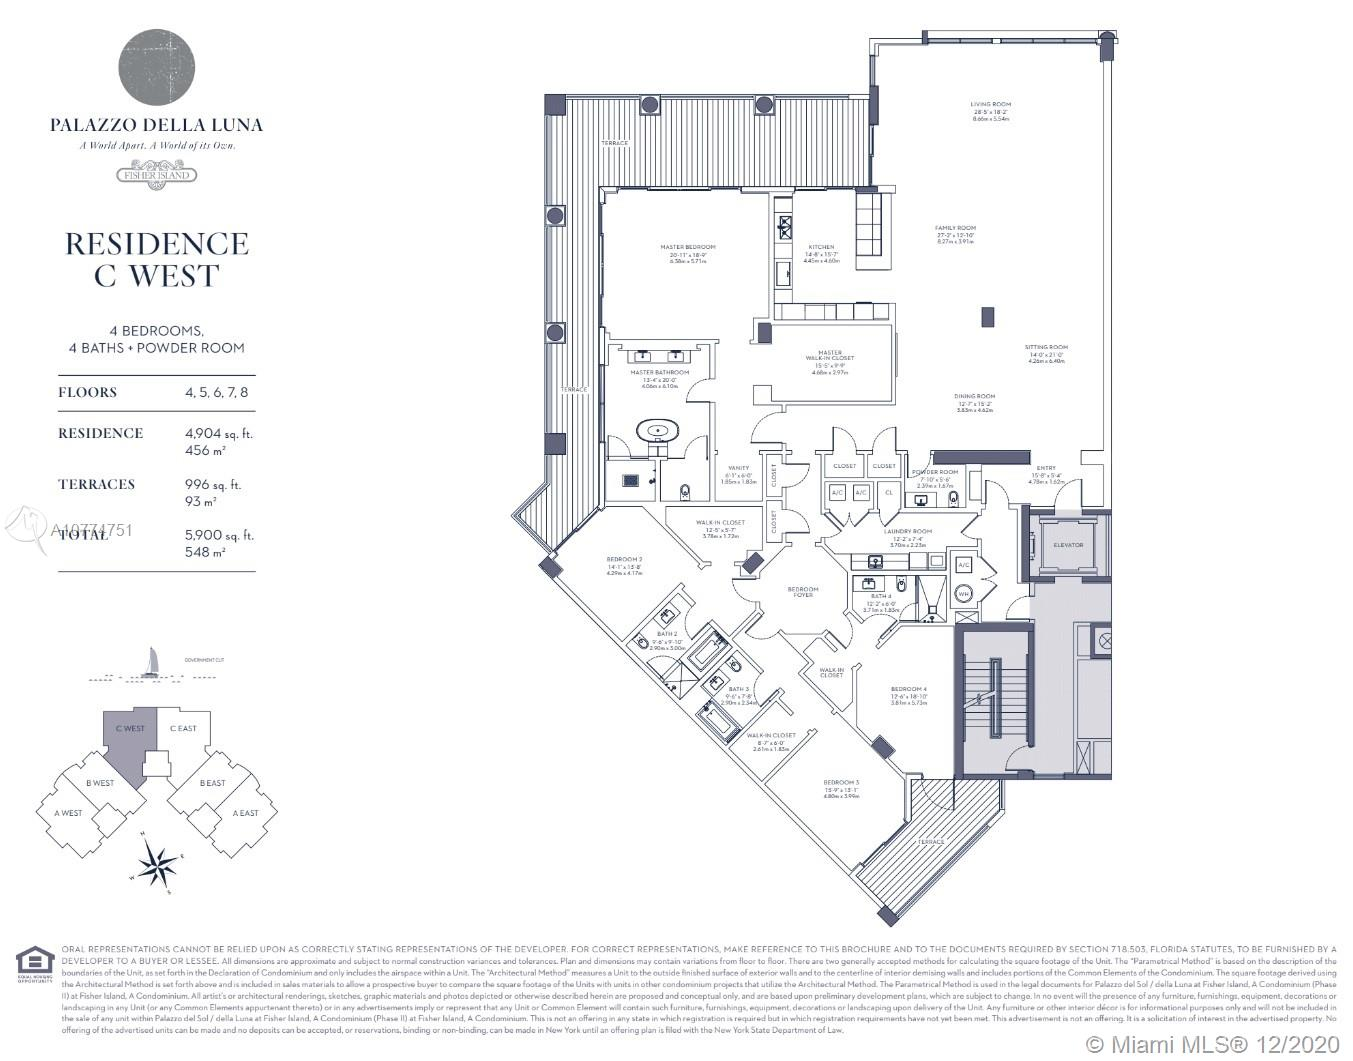 6883  Fisher Island Dr   6883